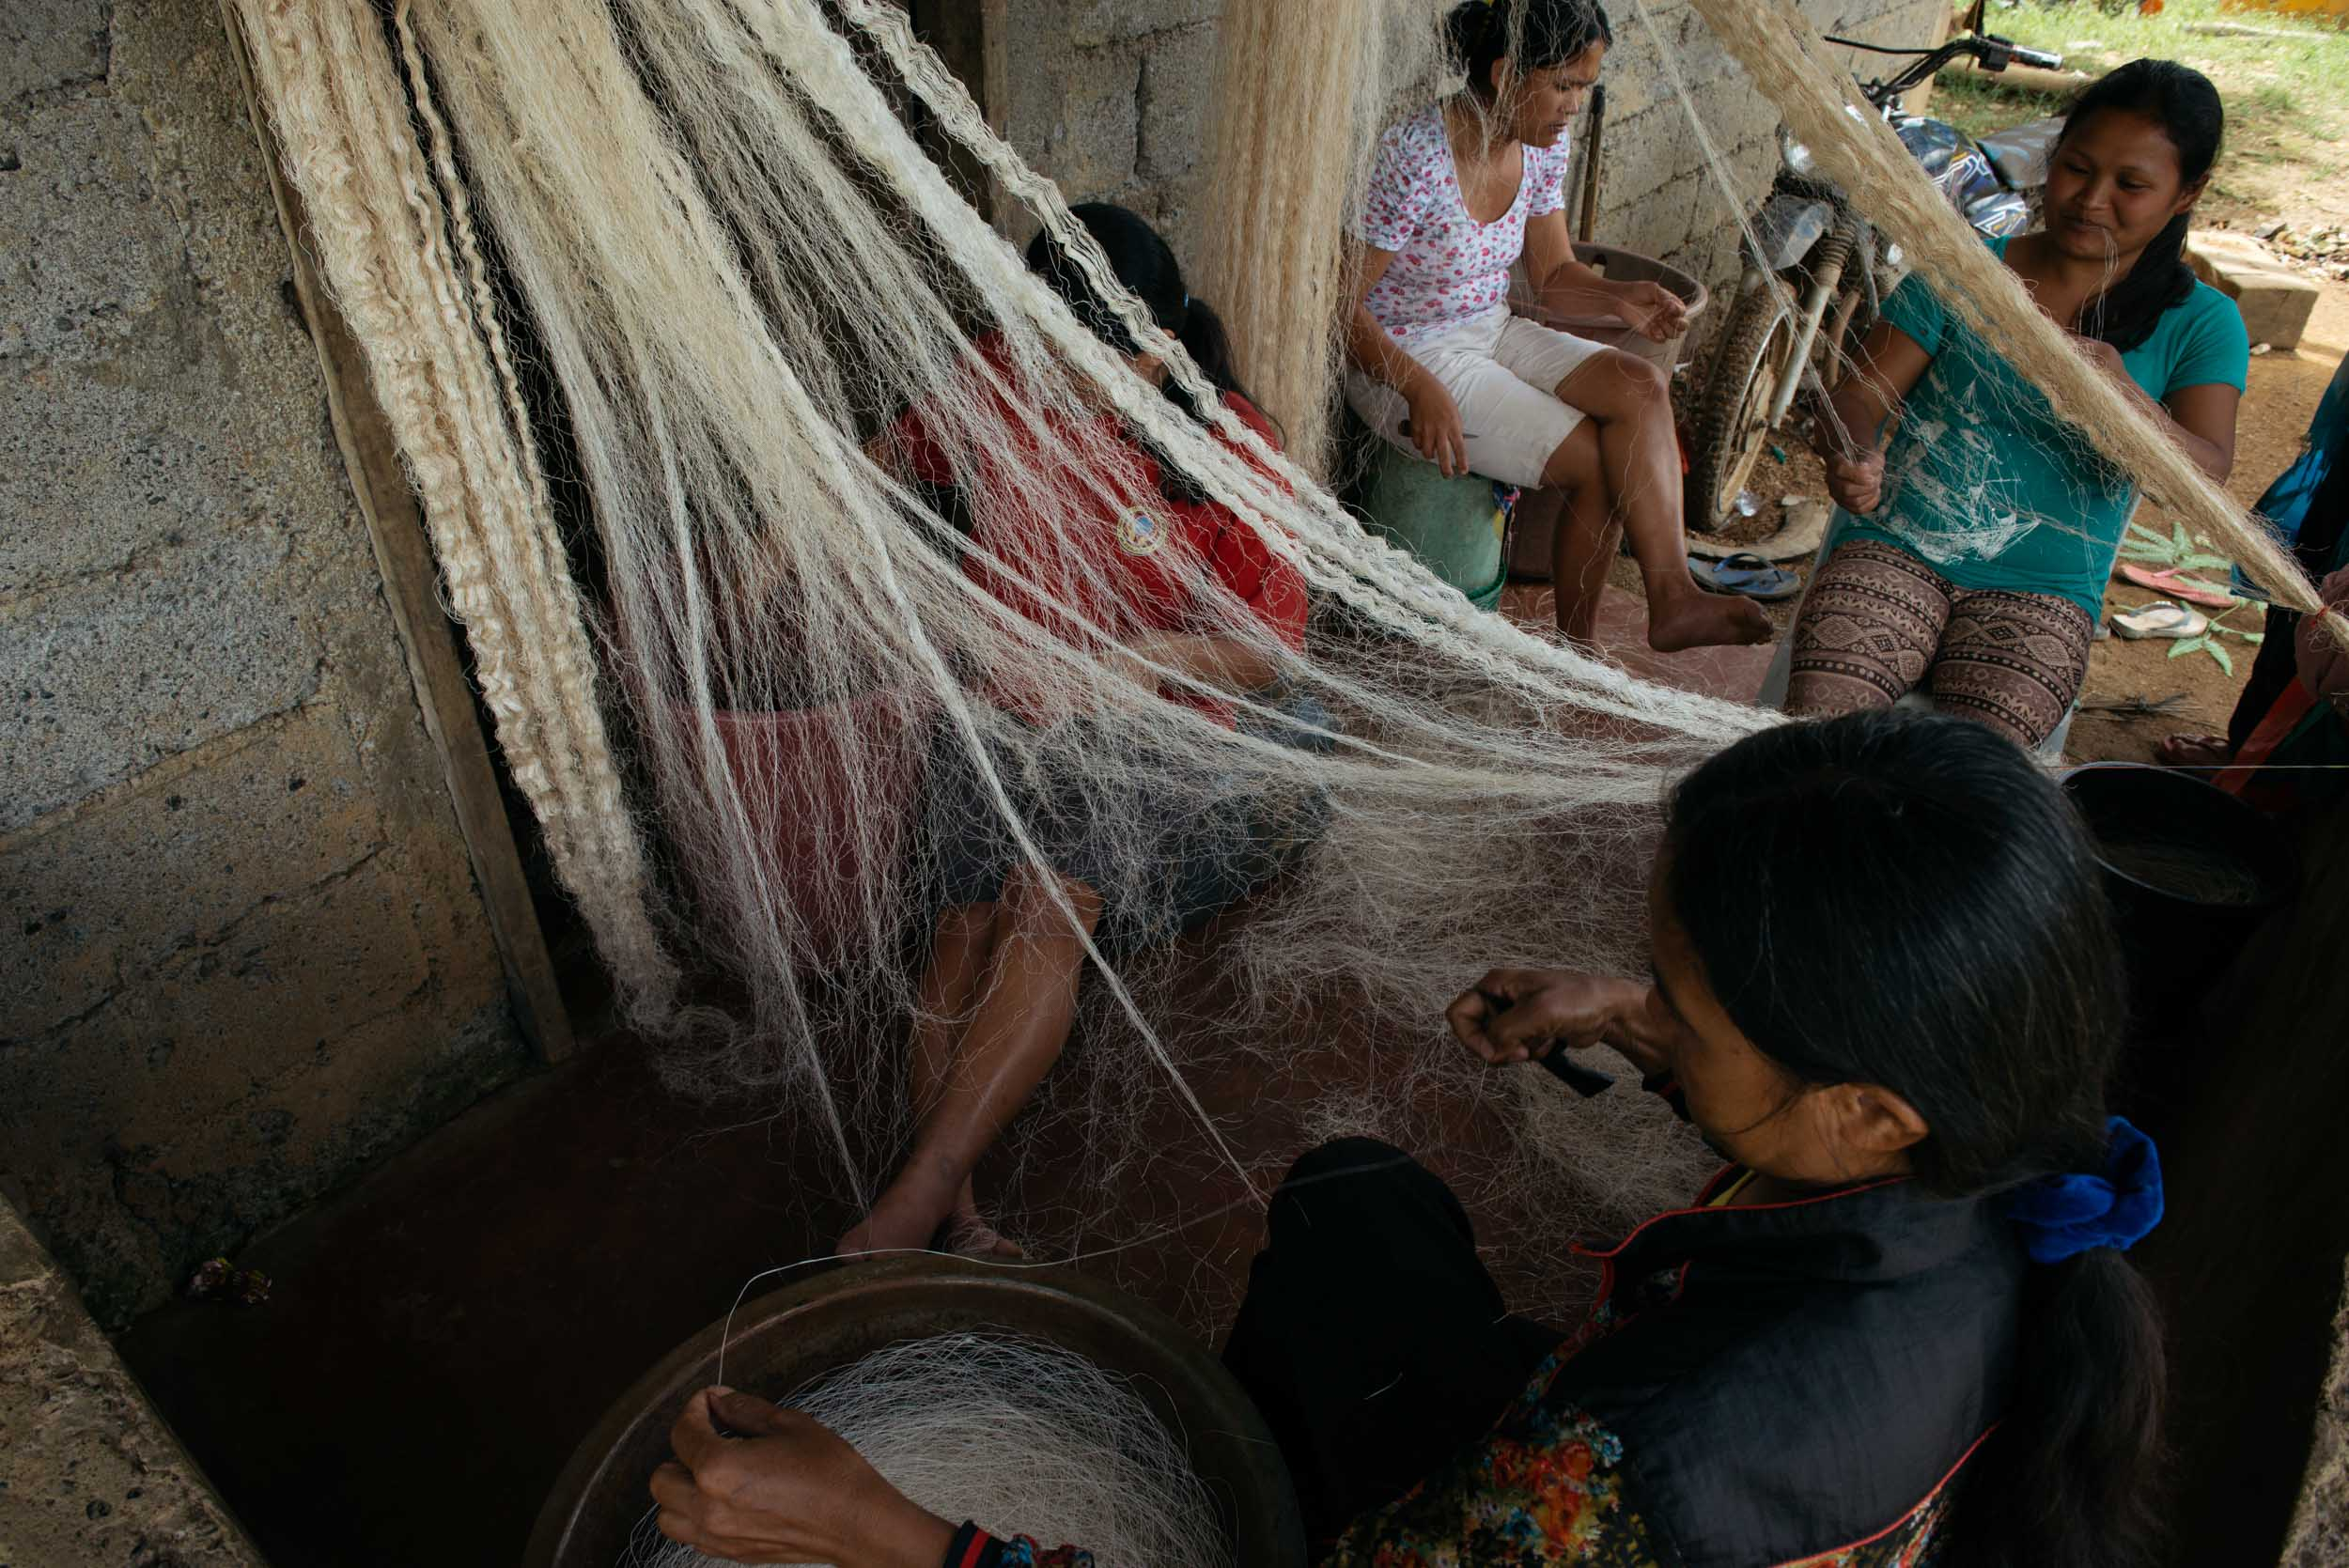 The women from the community will then start their afternoons with a side of daily chats and catch-ups through  pagkukuyakay  or choosing strands of fiber from a hanged freshly sun-baked  lanot . By  pagkuyakay , they patiently combine two or three fibers together to create meters of threads for weaving. Along with  pagkuyakay  is the  pagdugtong  or knotting of lanot to create longer threads.